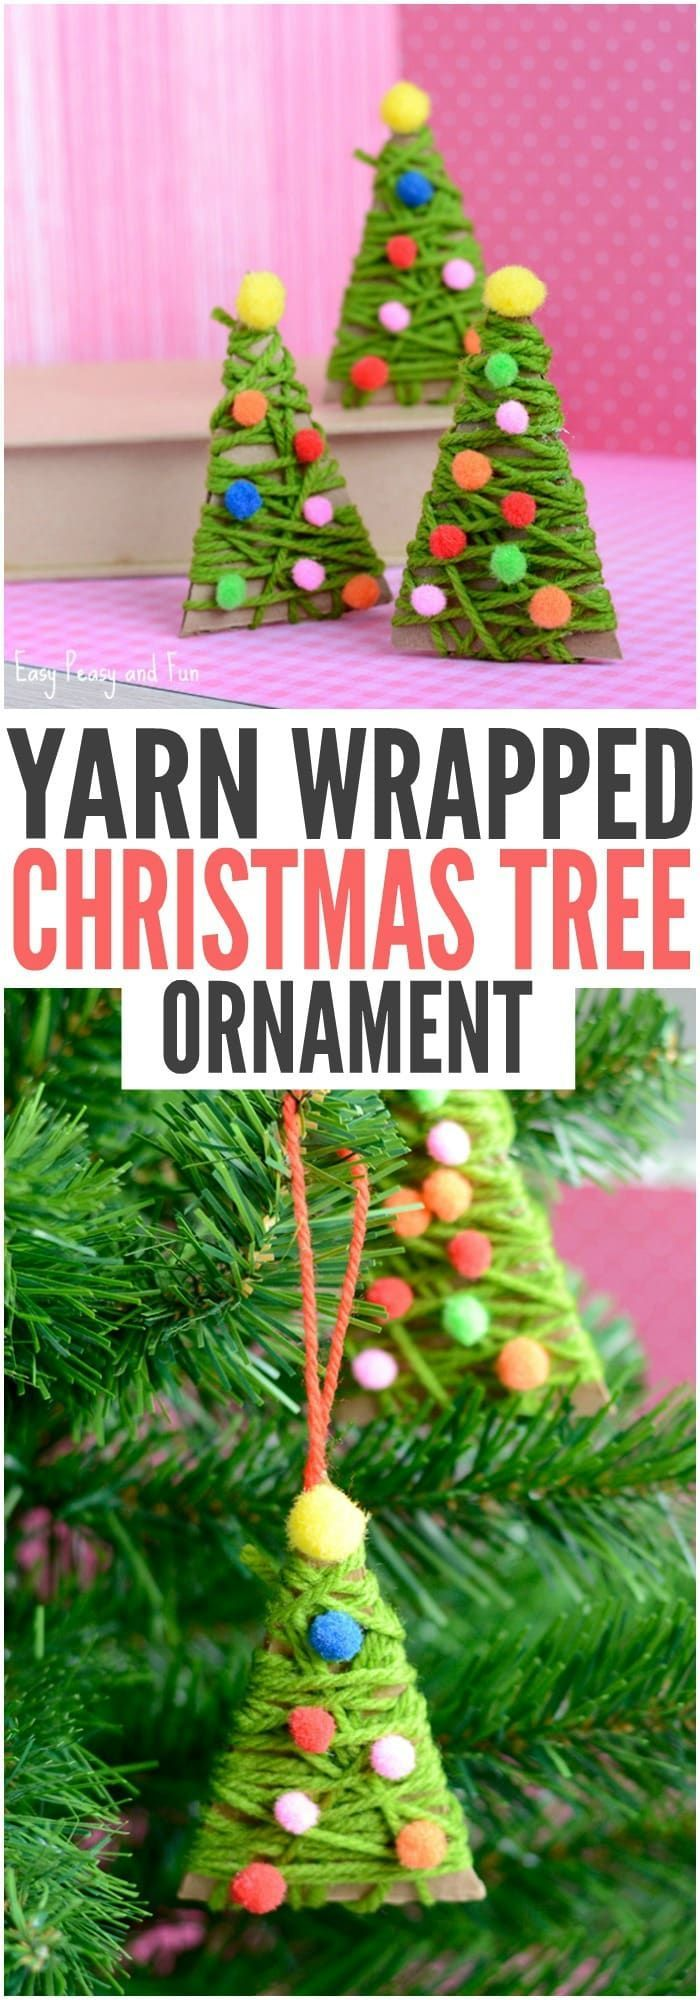 358 best Handmade Ornaments for Kids images on Pinterest